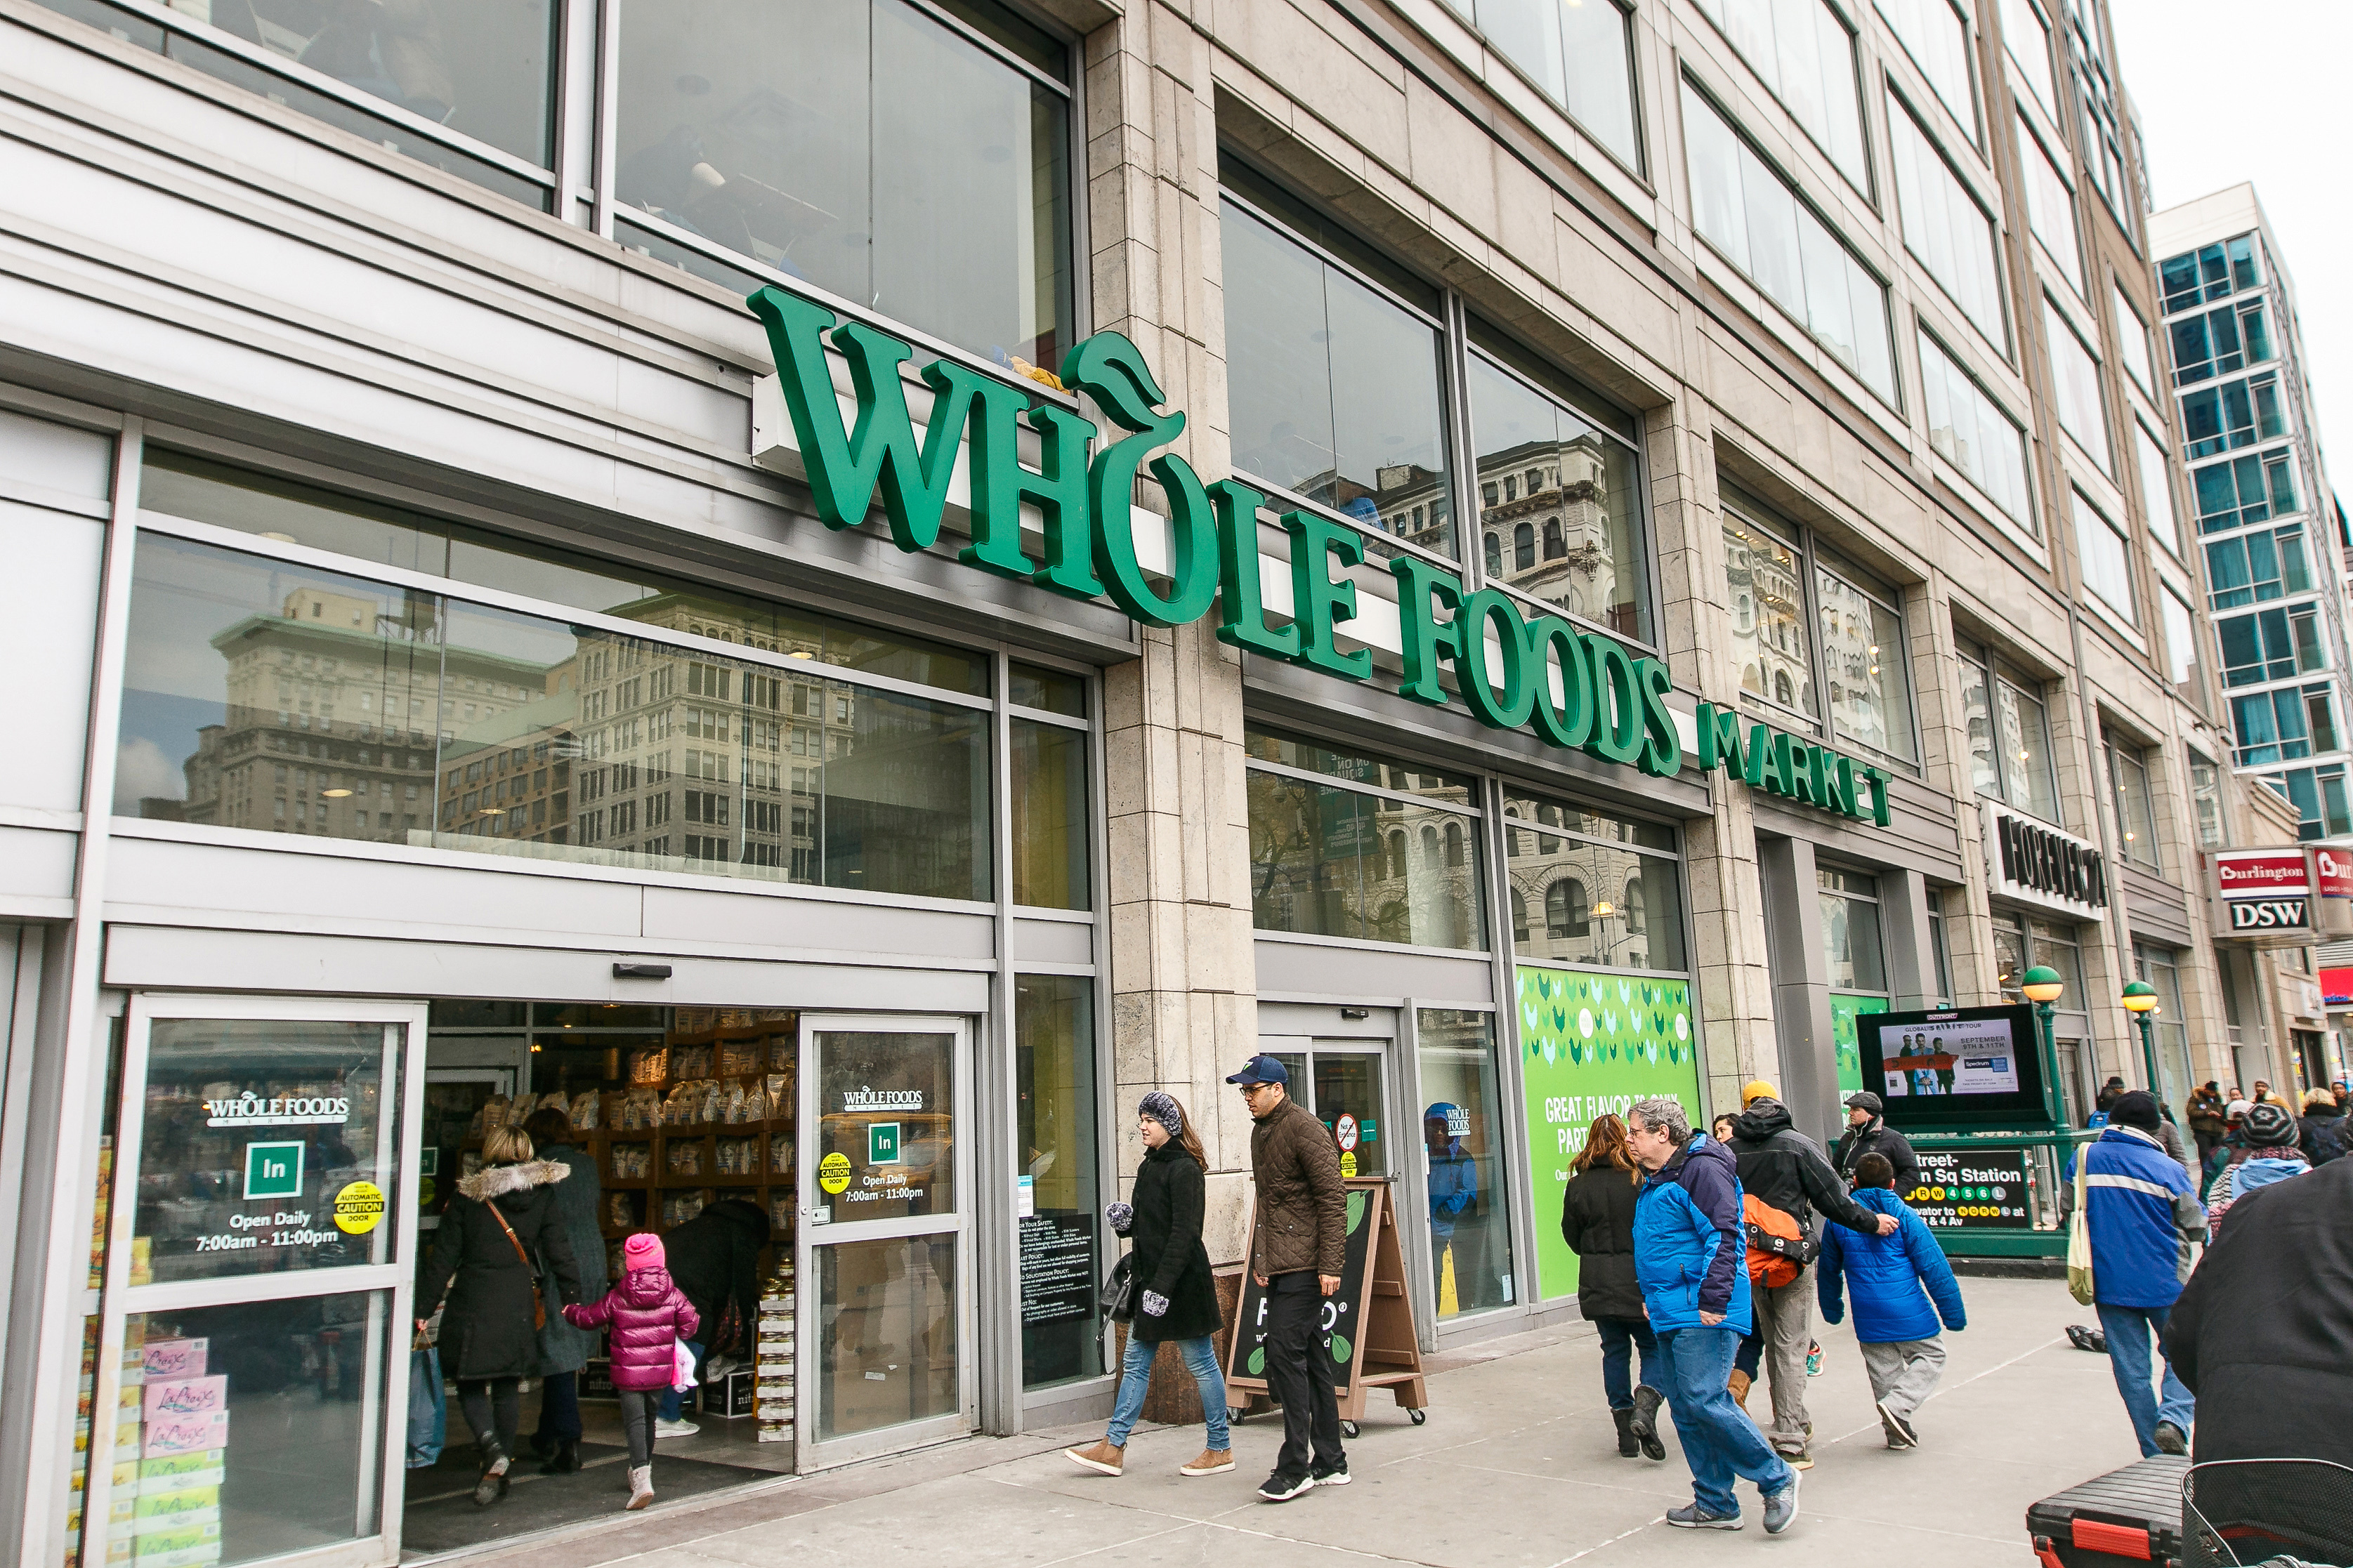 Store front of a Whole Foods Market in New York, shown with people walking in and out of the store.